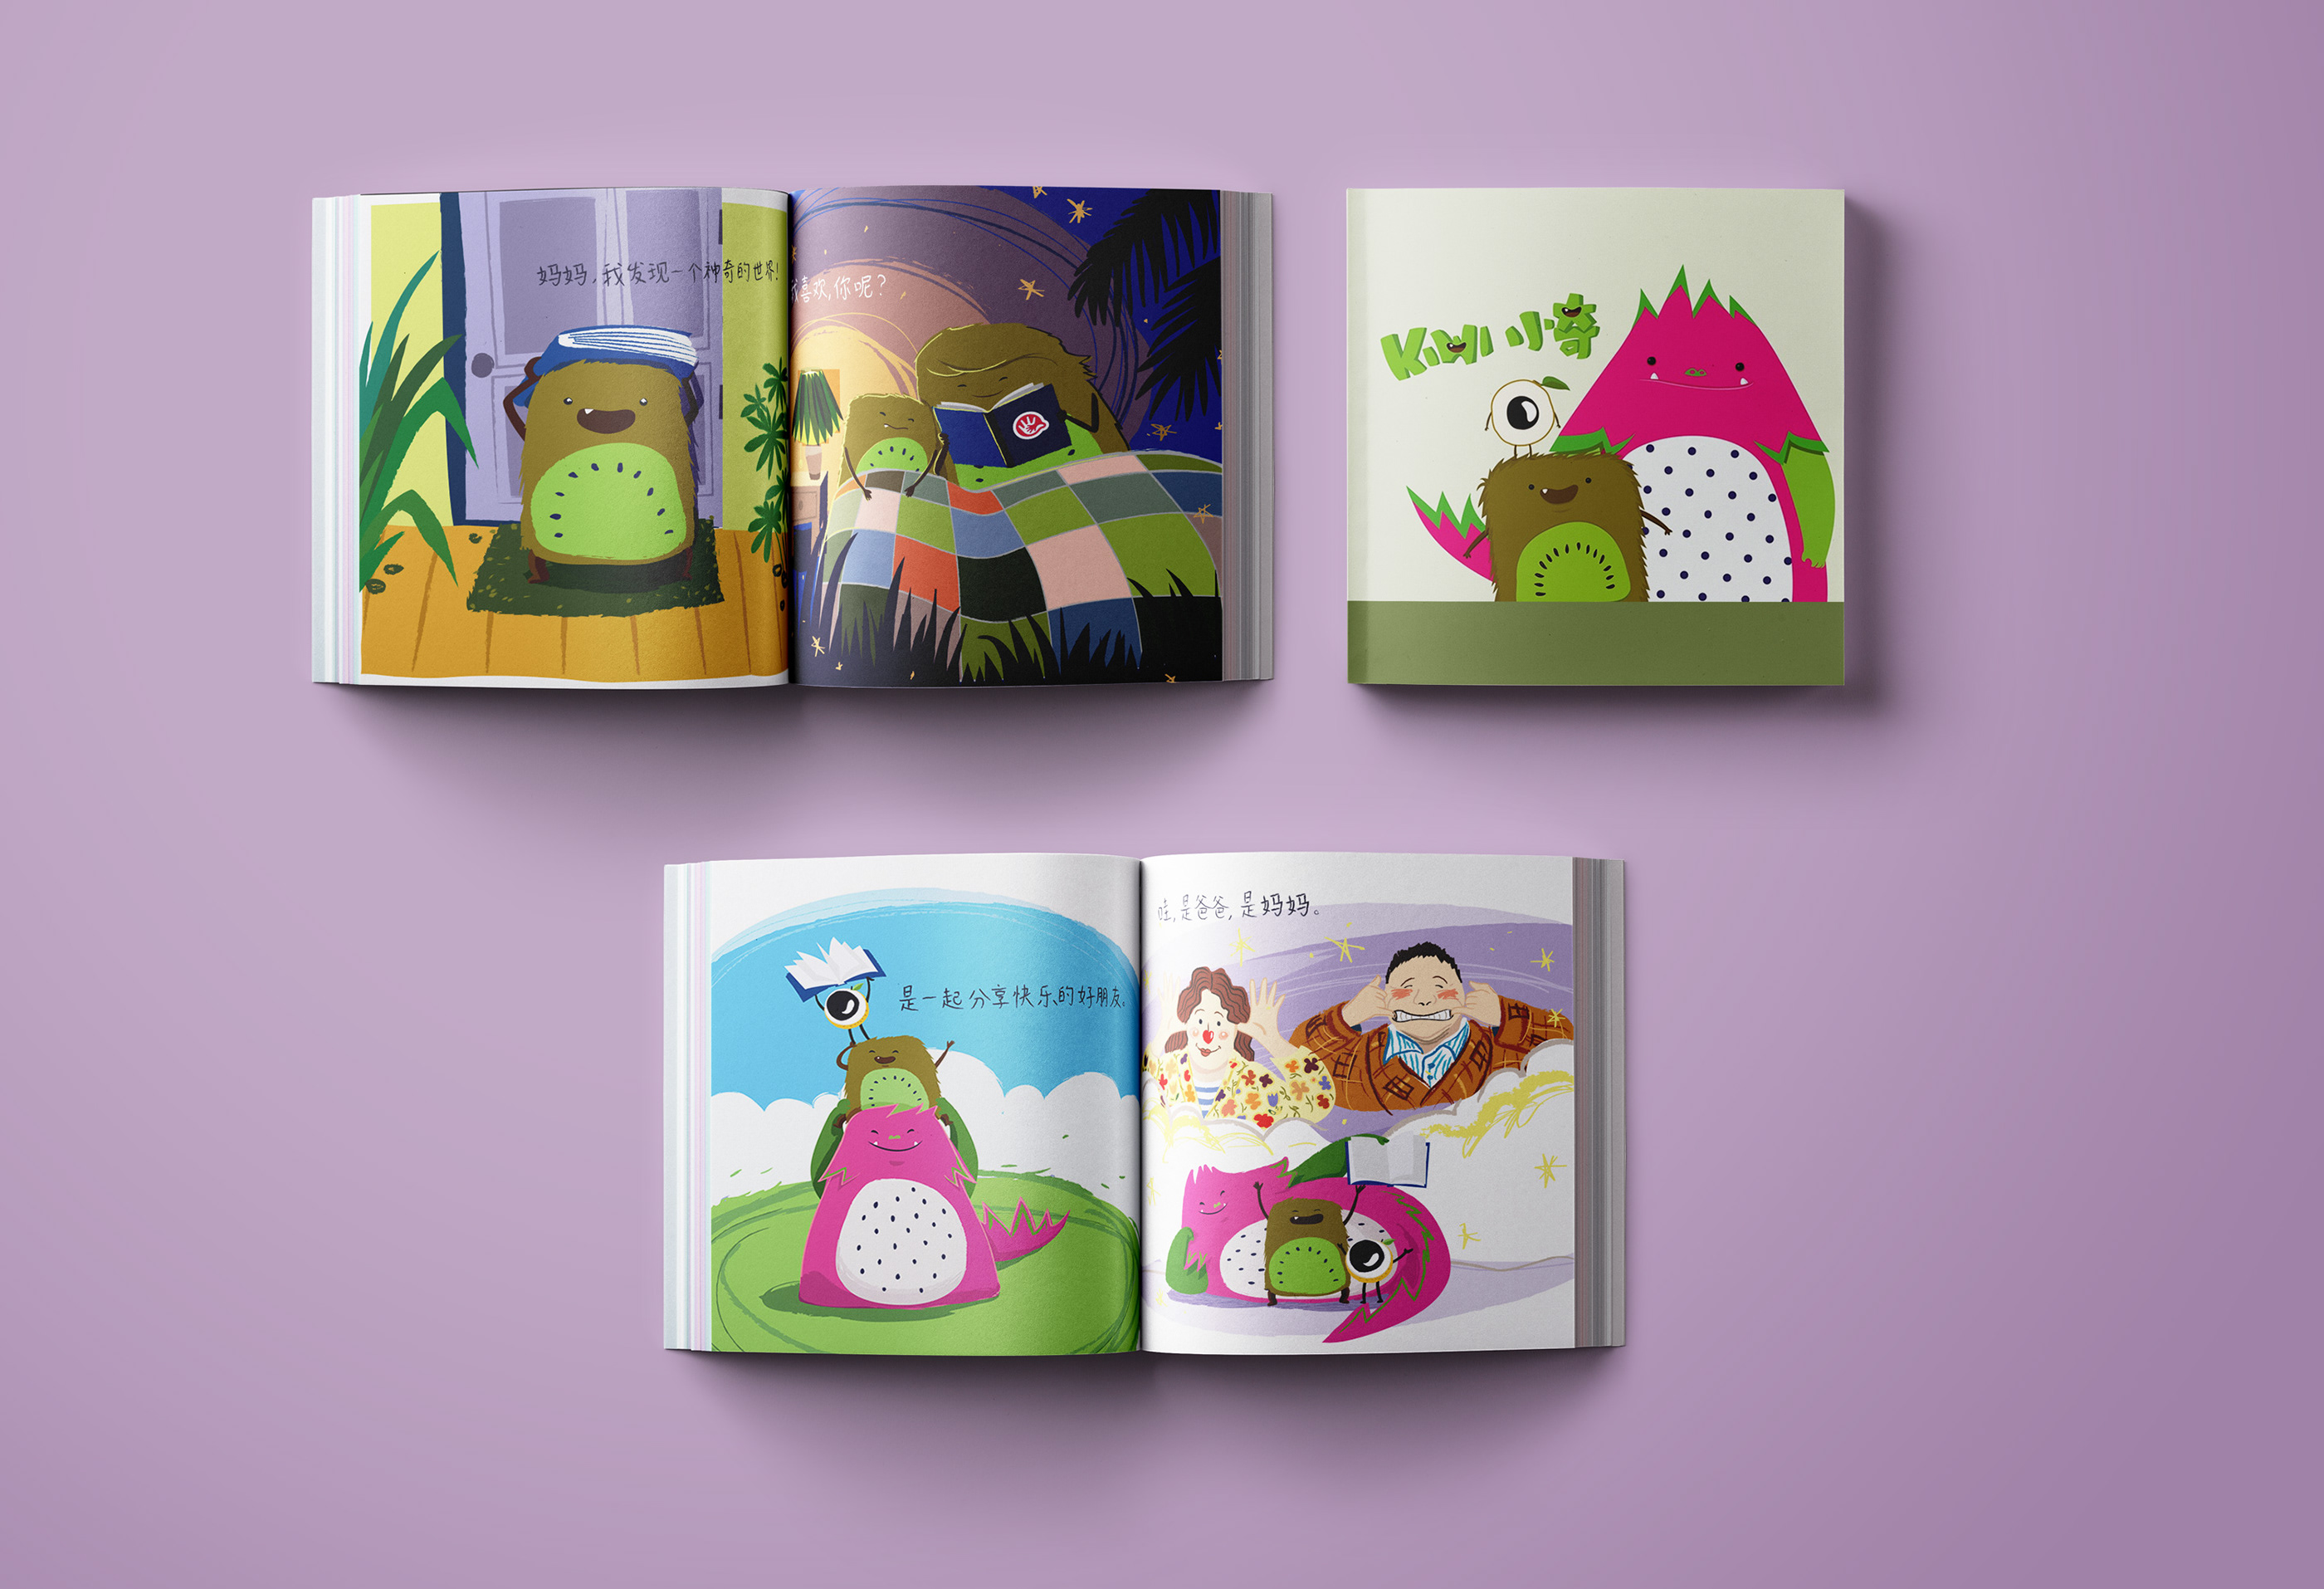 Kiwi the fruit monster book